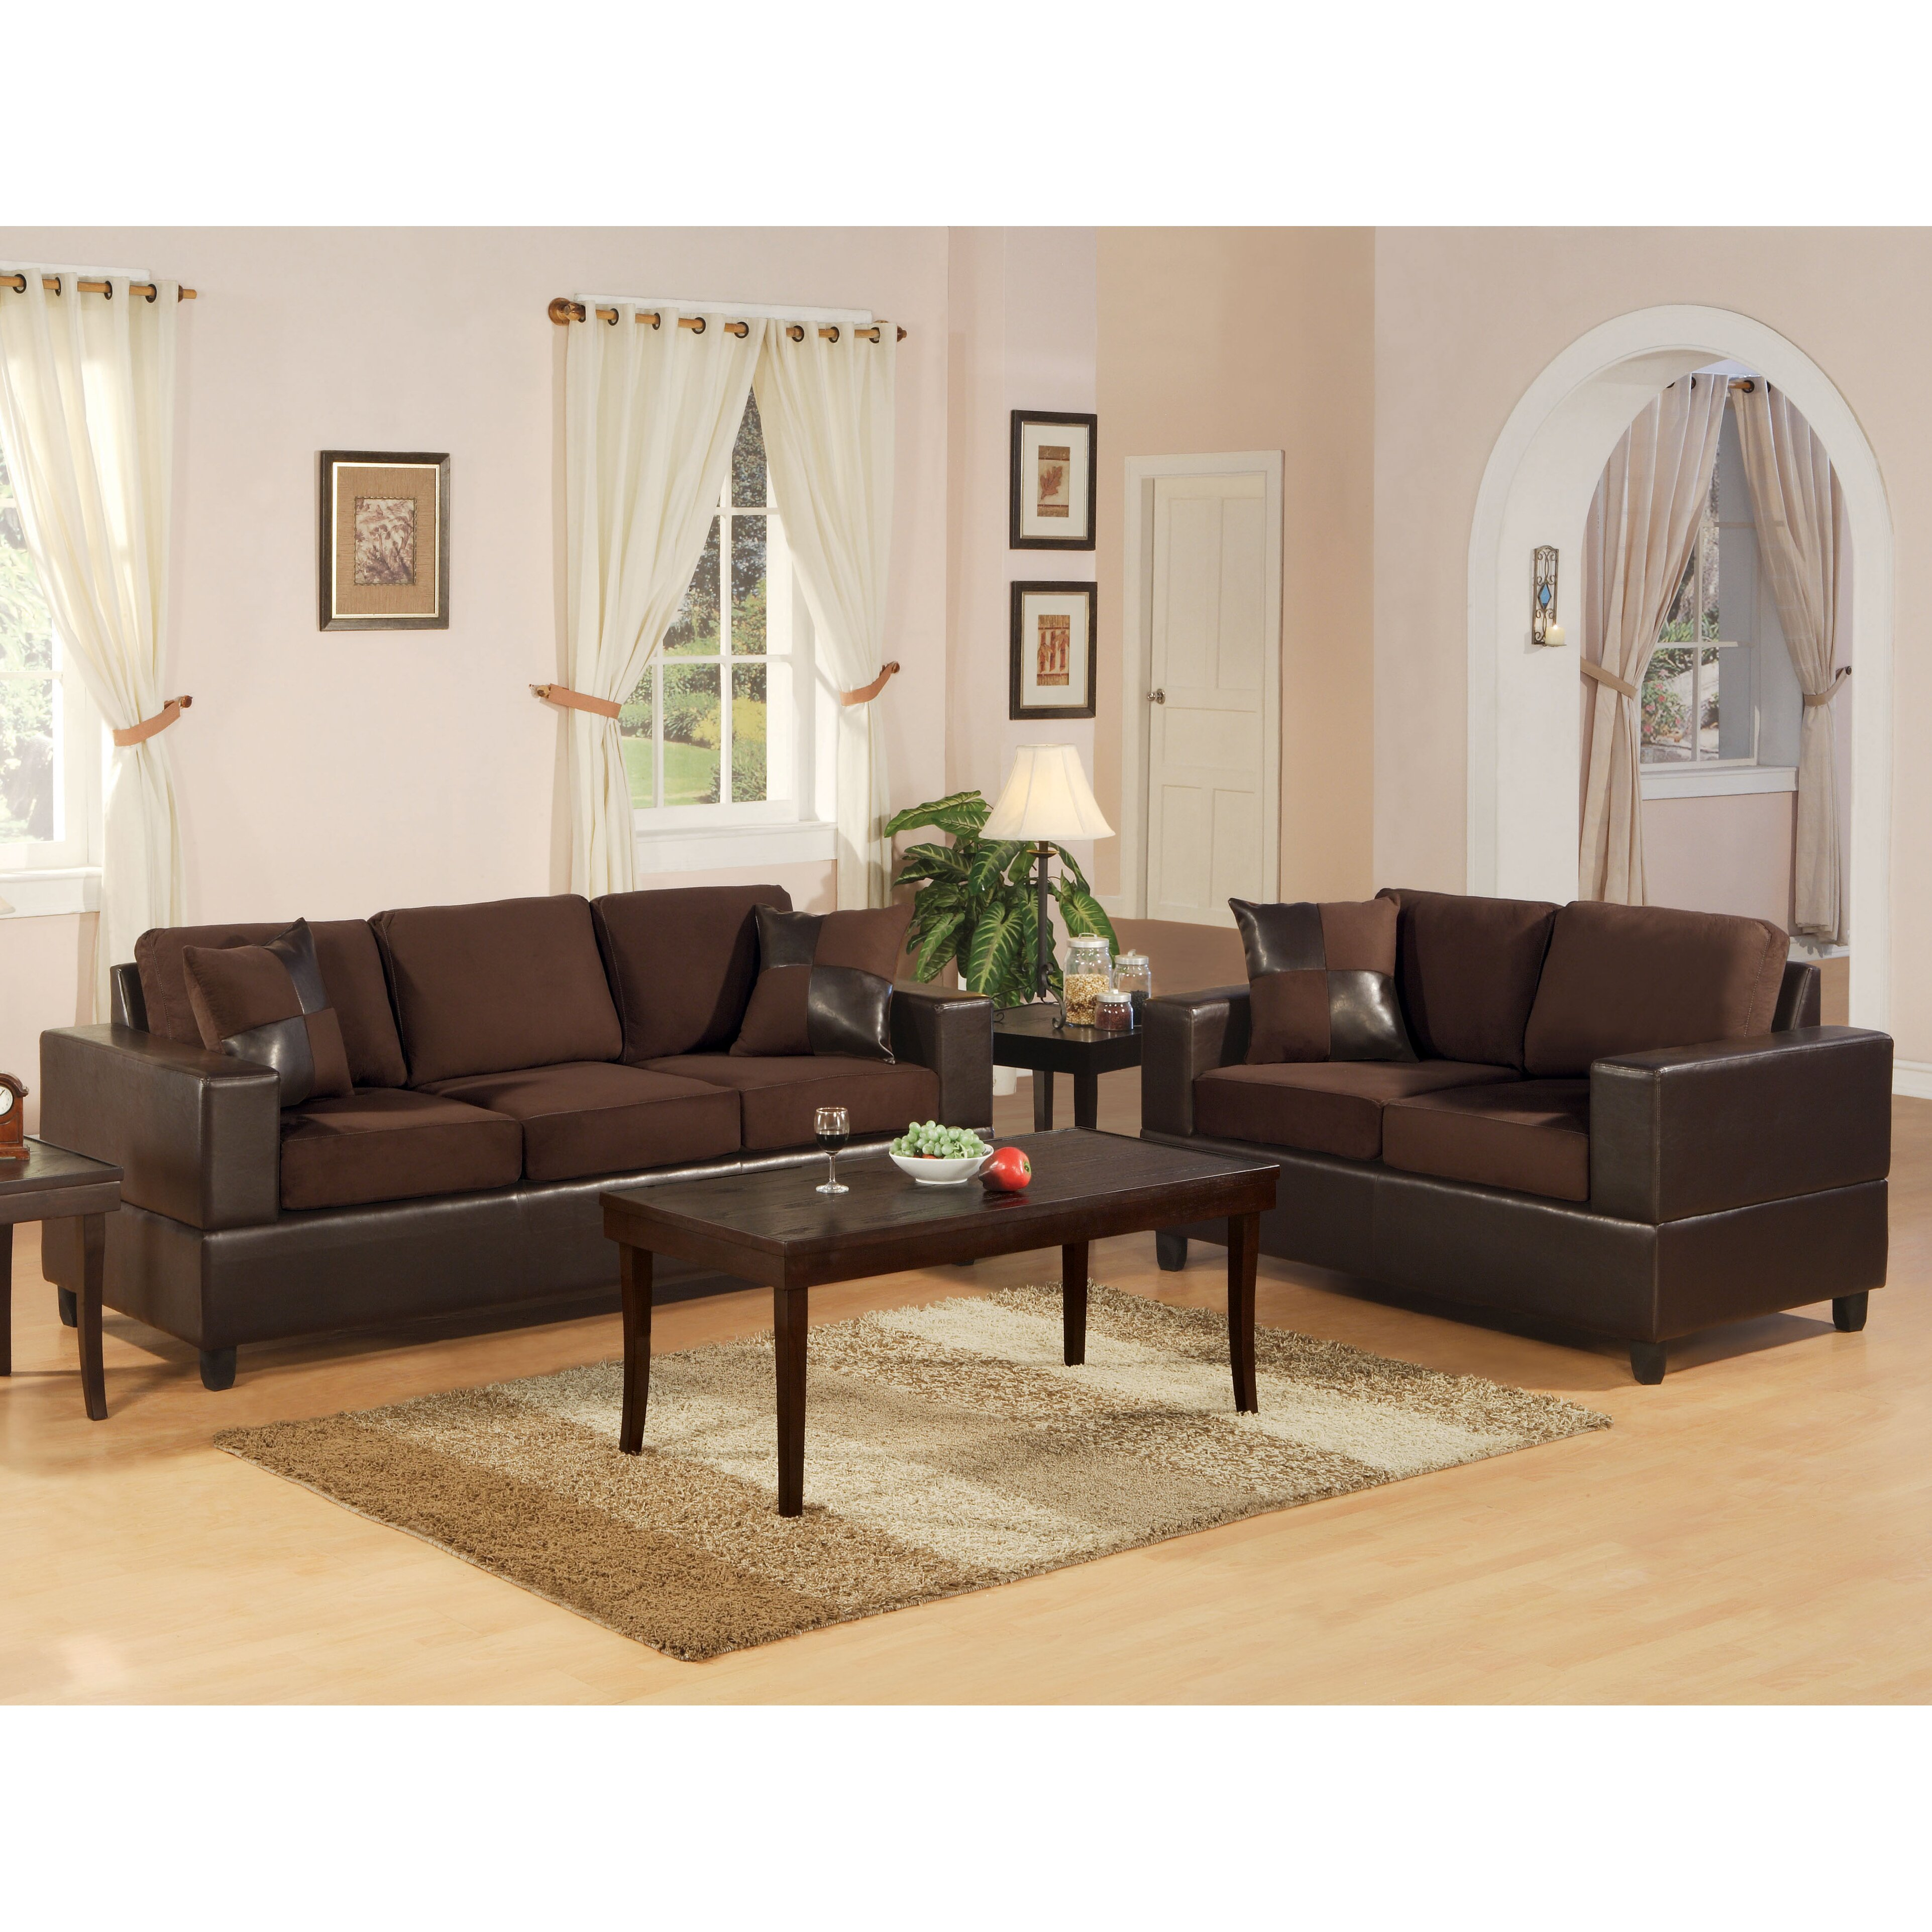 Living Room Sofa And Loveseat Sets Andover Mills Corporate 2 Piece Sofa And Loveseat Set Reviews